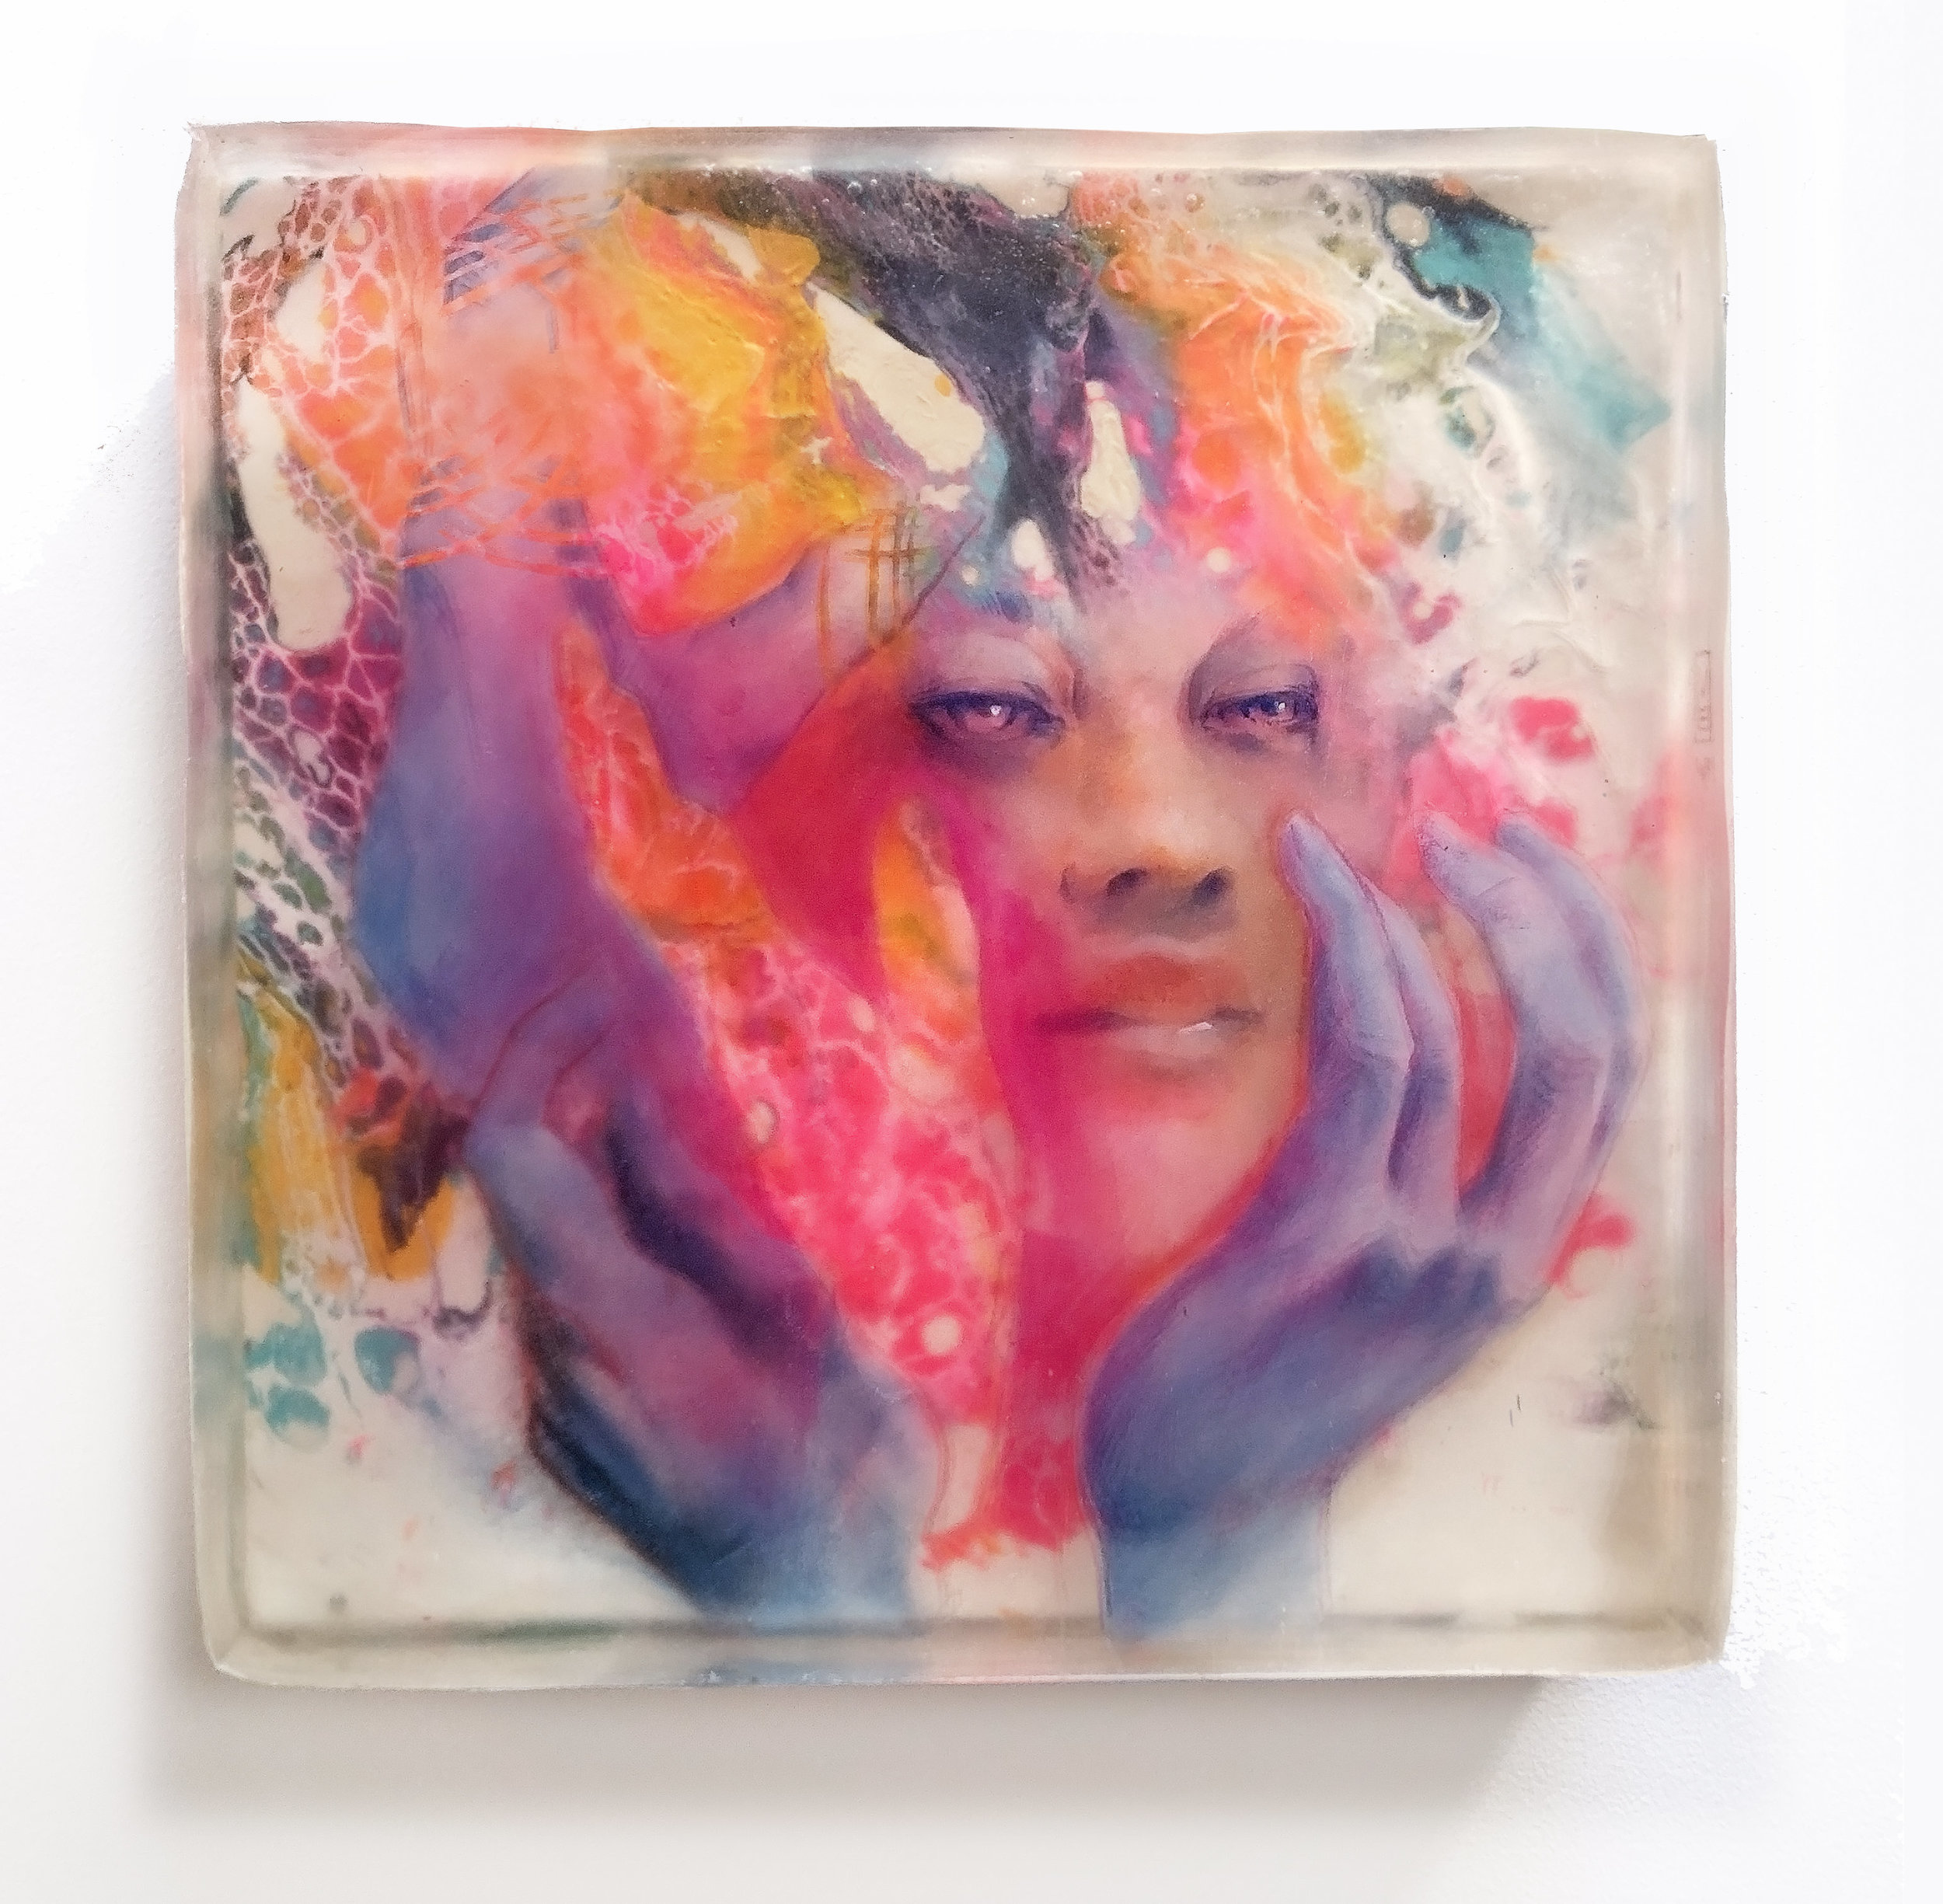 Corey Helford Gallery - Marc Scheff - Glorious - Mixed Media and ArtResin - 12x12x3 - 2019 - $2000.jpg